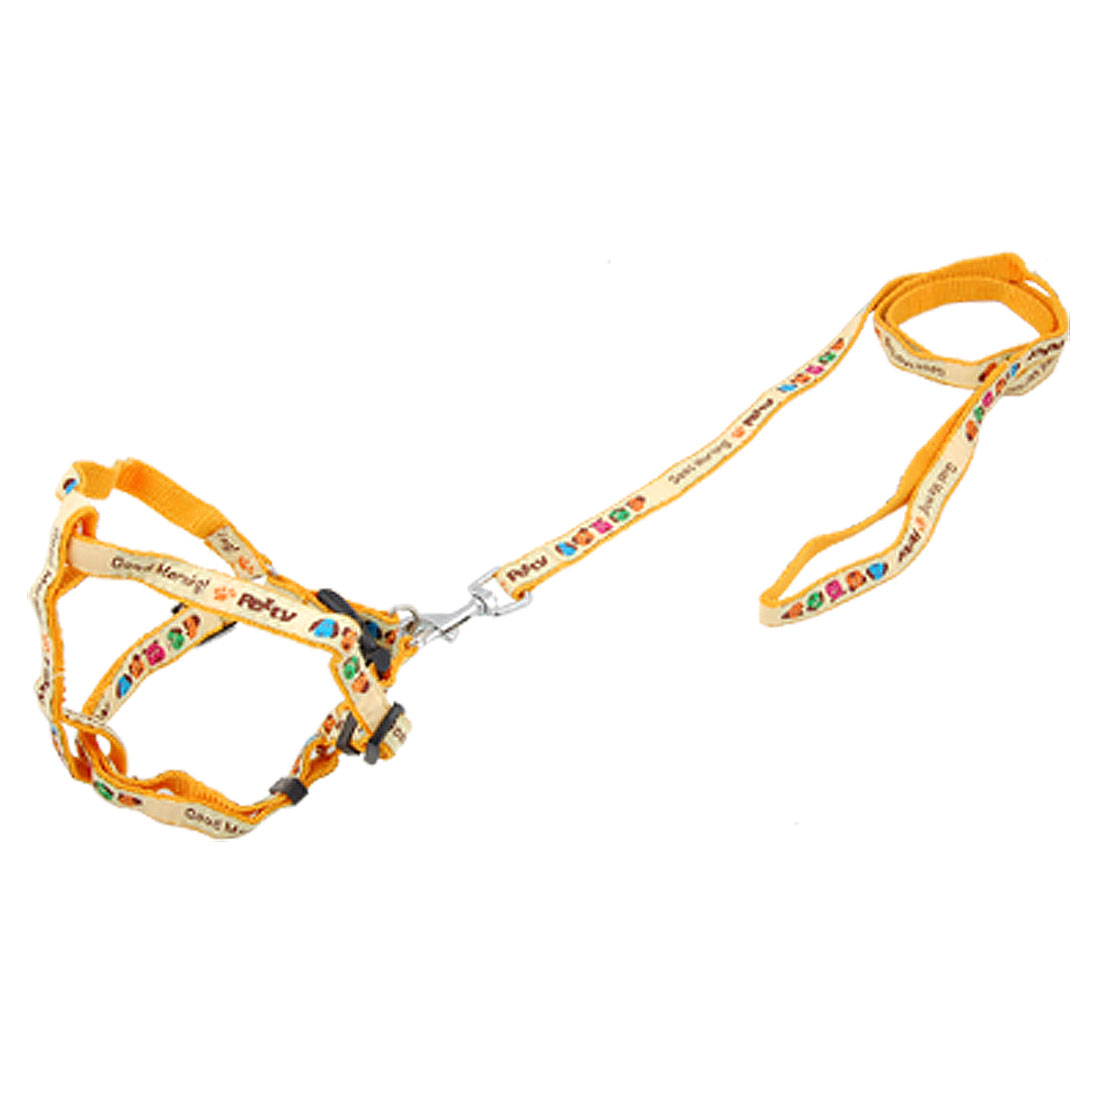 Dog Paw Print Adjustable Nylon Harnesses w Leash Orange